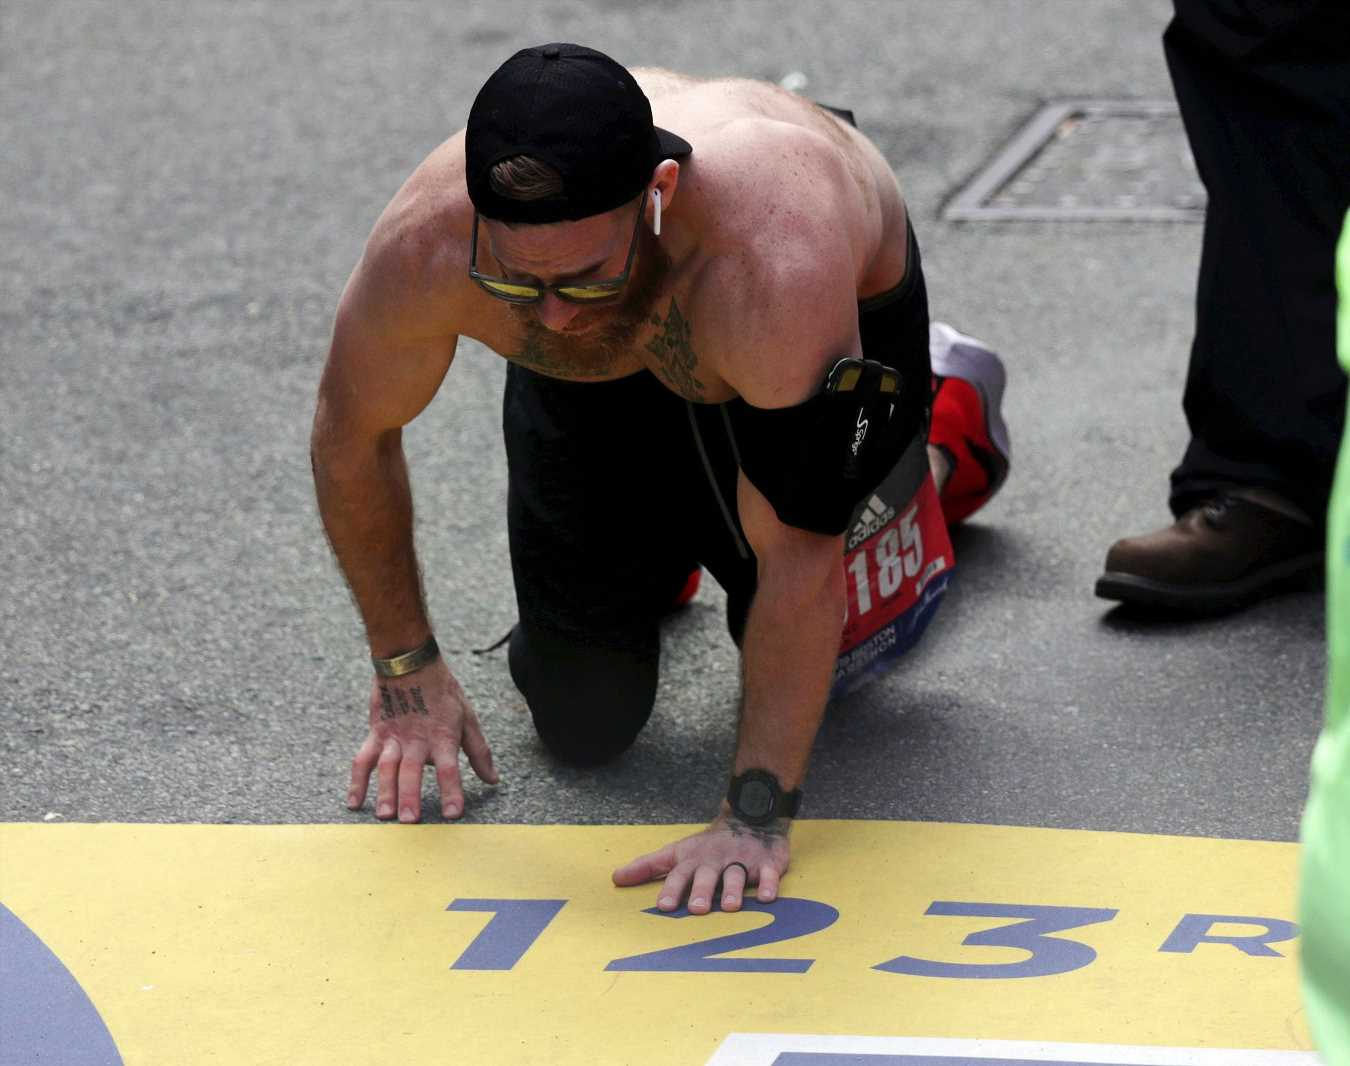 Runner Heroically Crawls Across Boston Marathon Finish Line — But Why He Ran Is Even More Inspiring